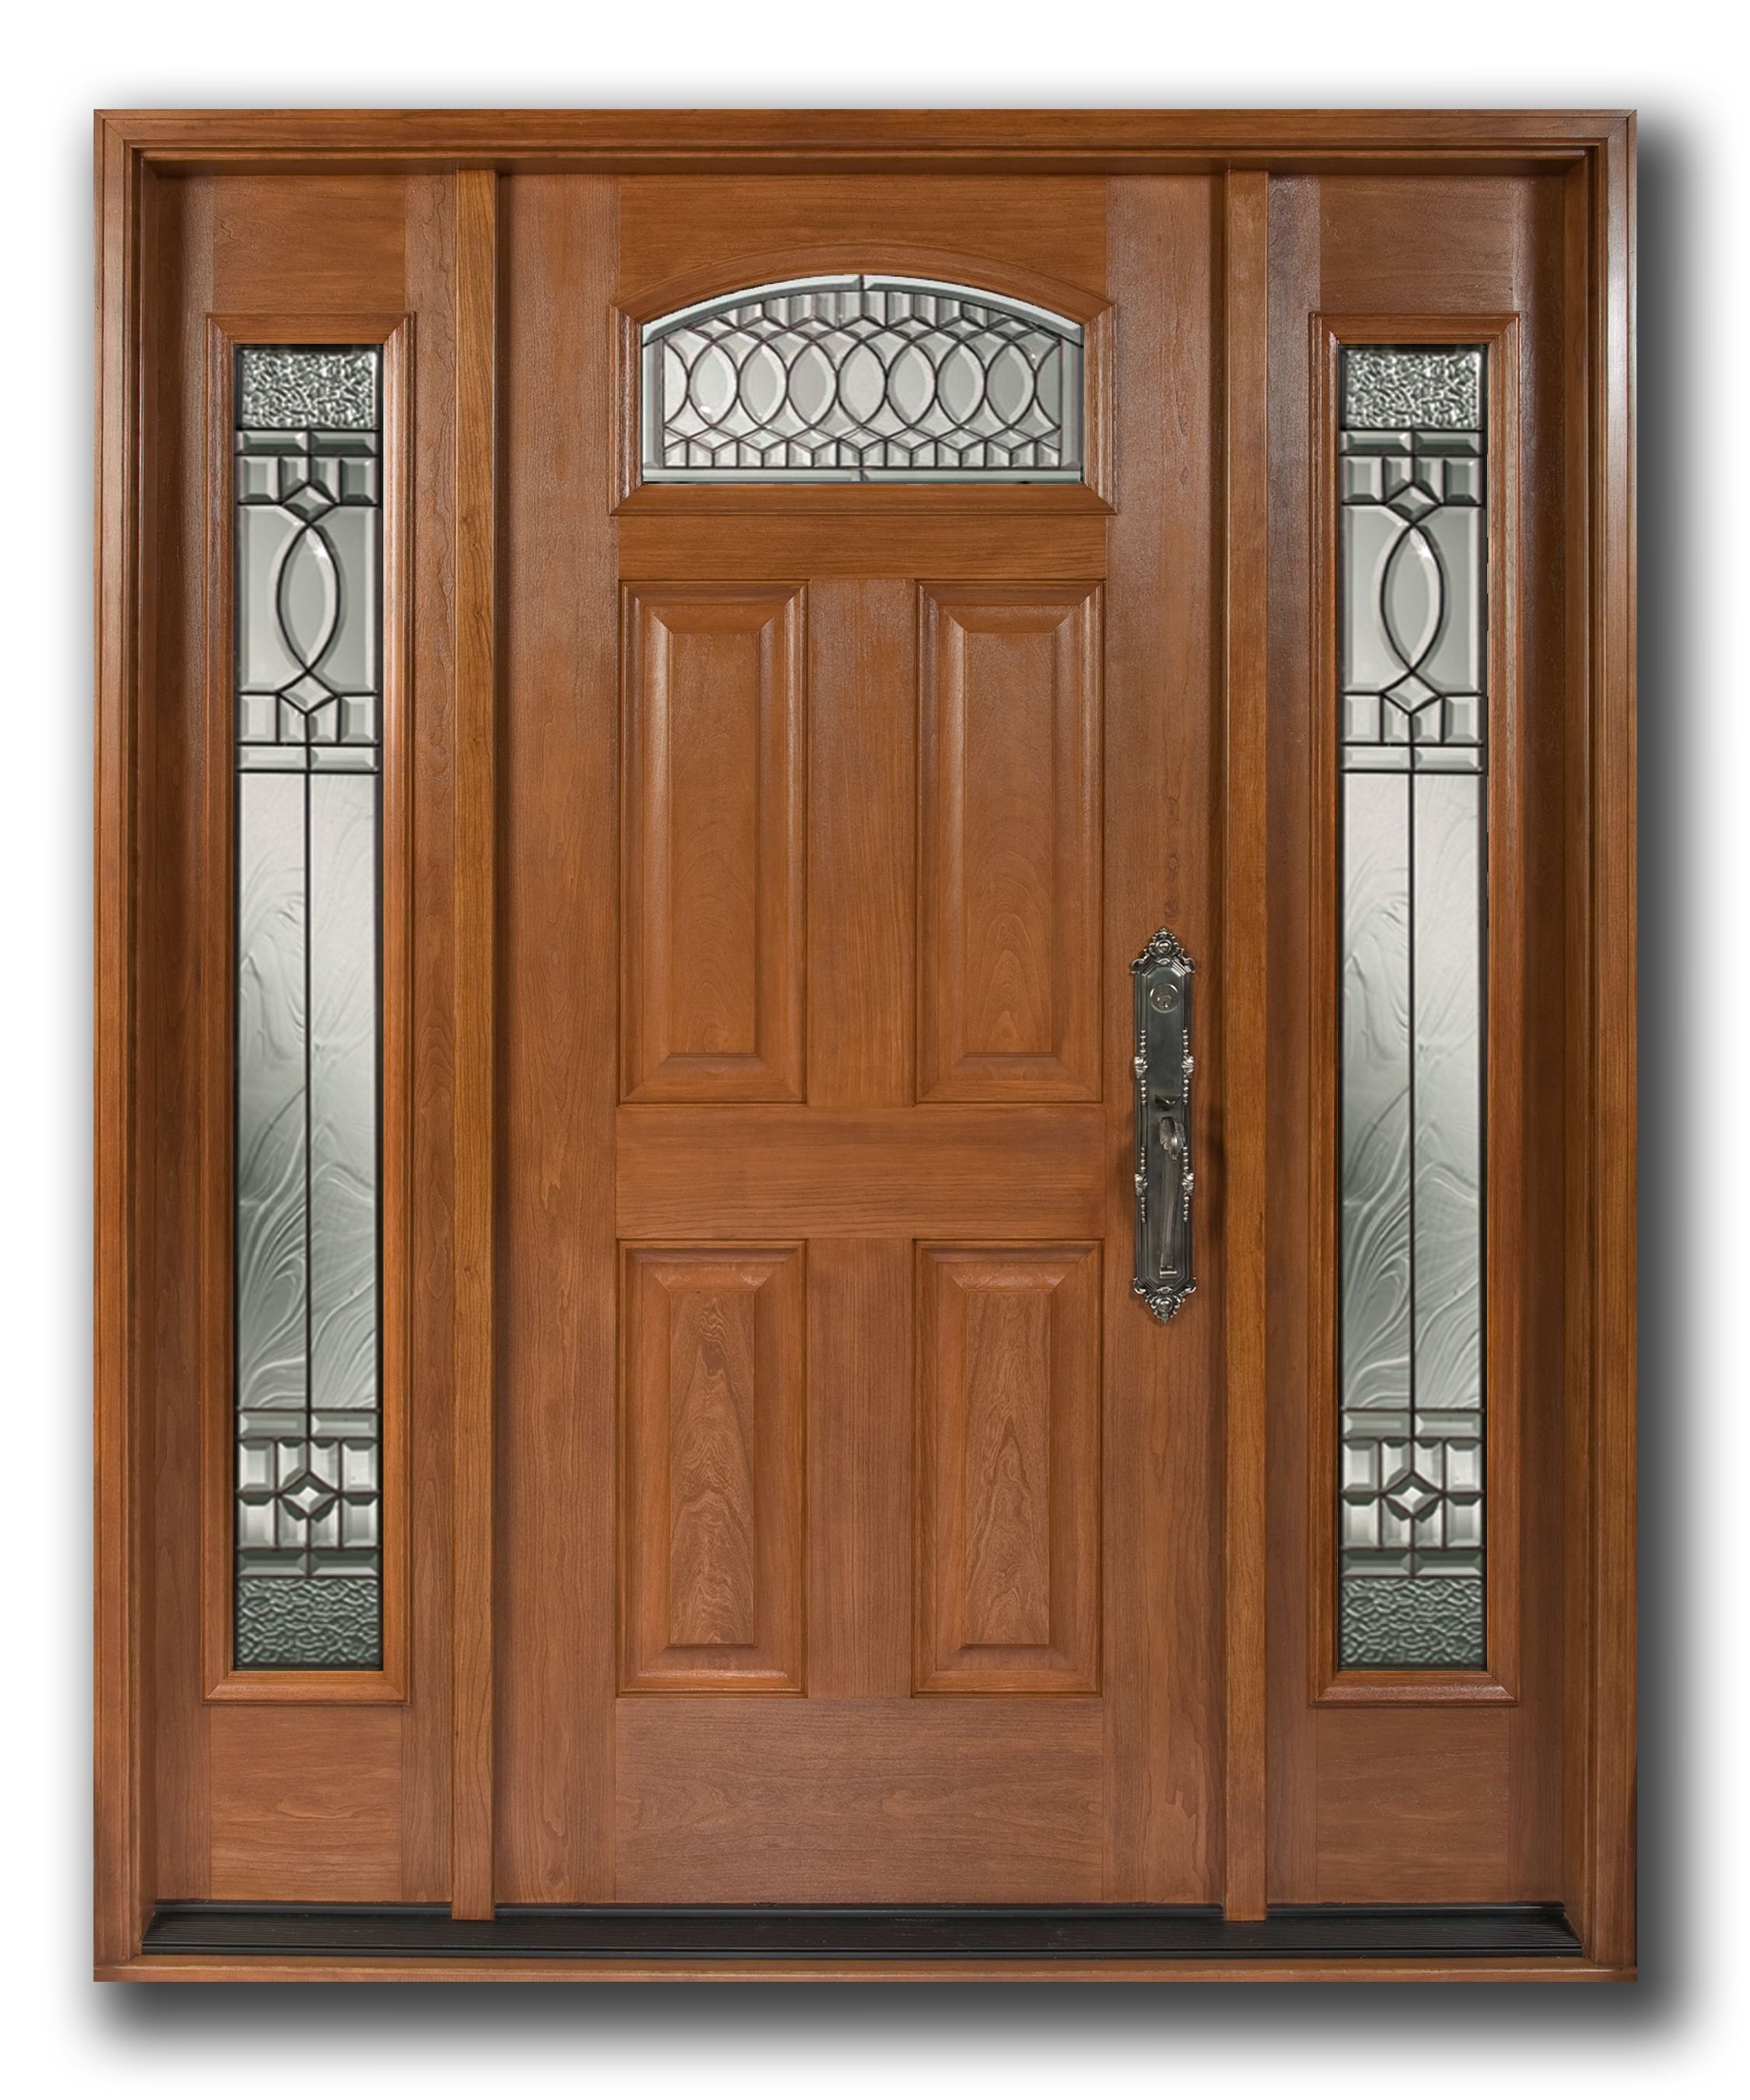 Upvc Doors And Windows Manufacturers In Delhi Making